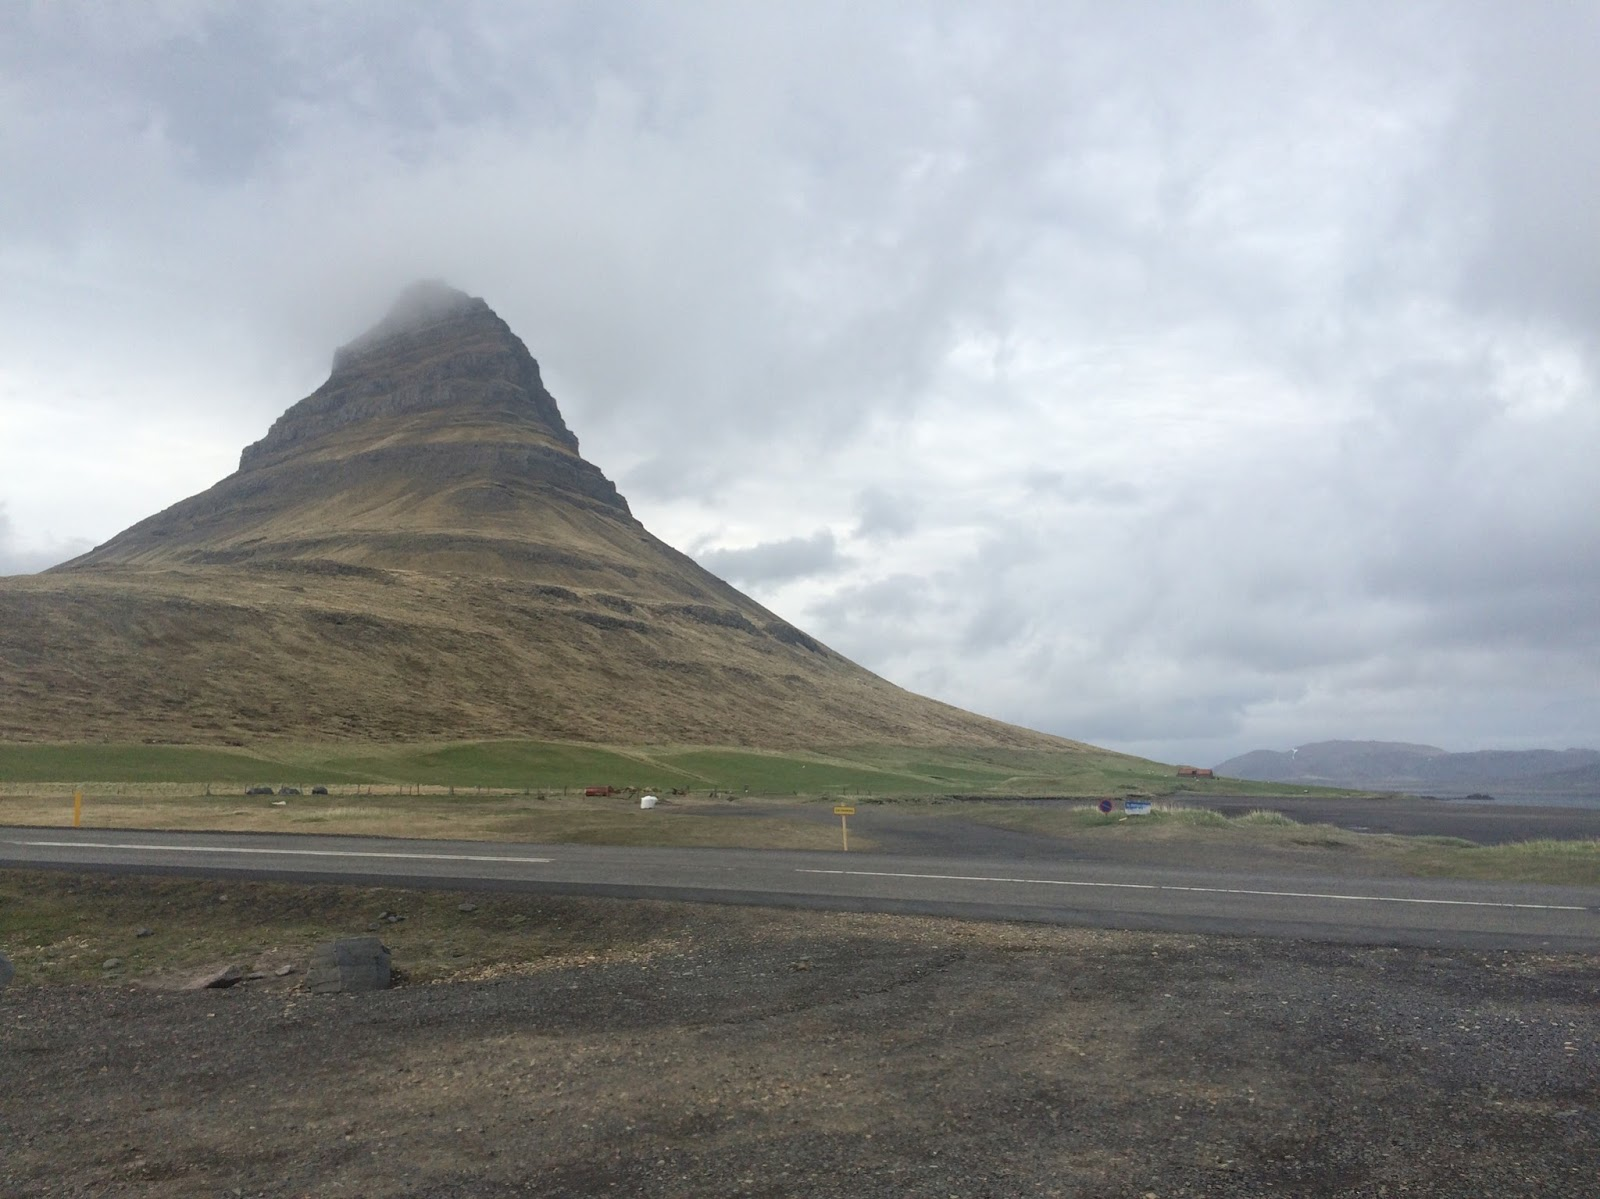 Driving along the Iceland fjords on a cloudy day